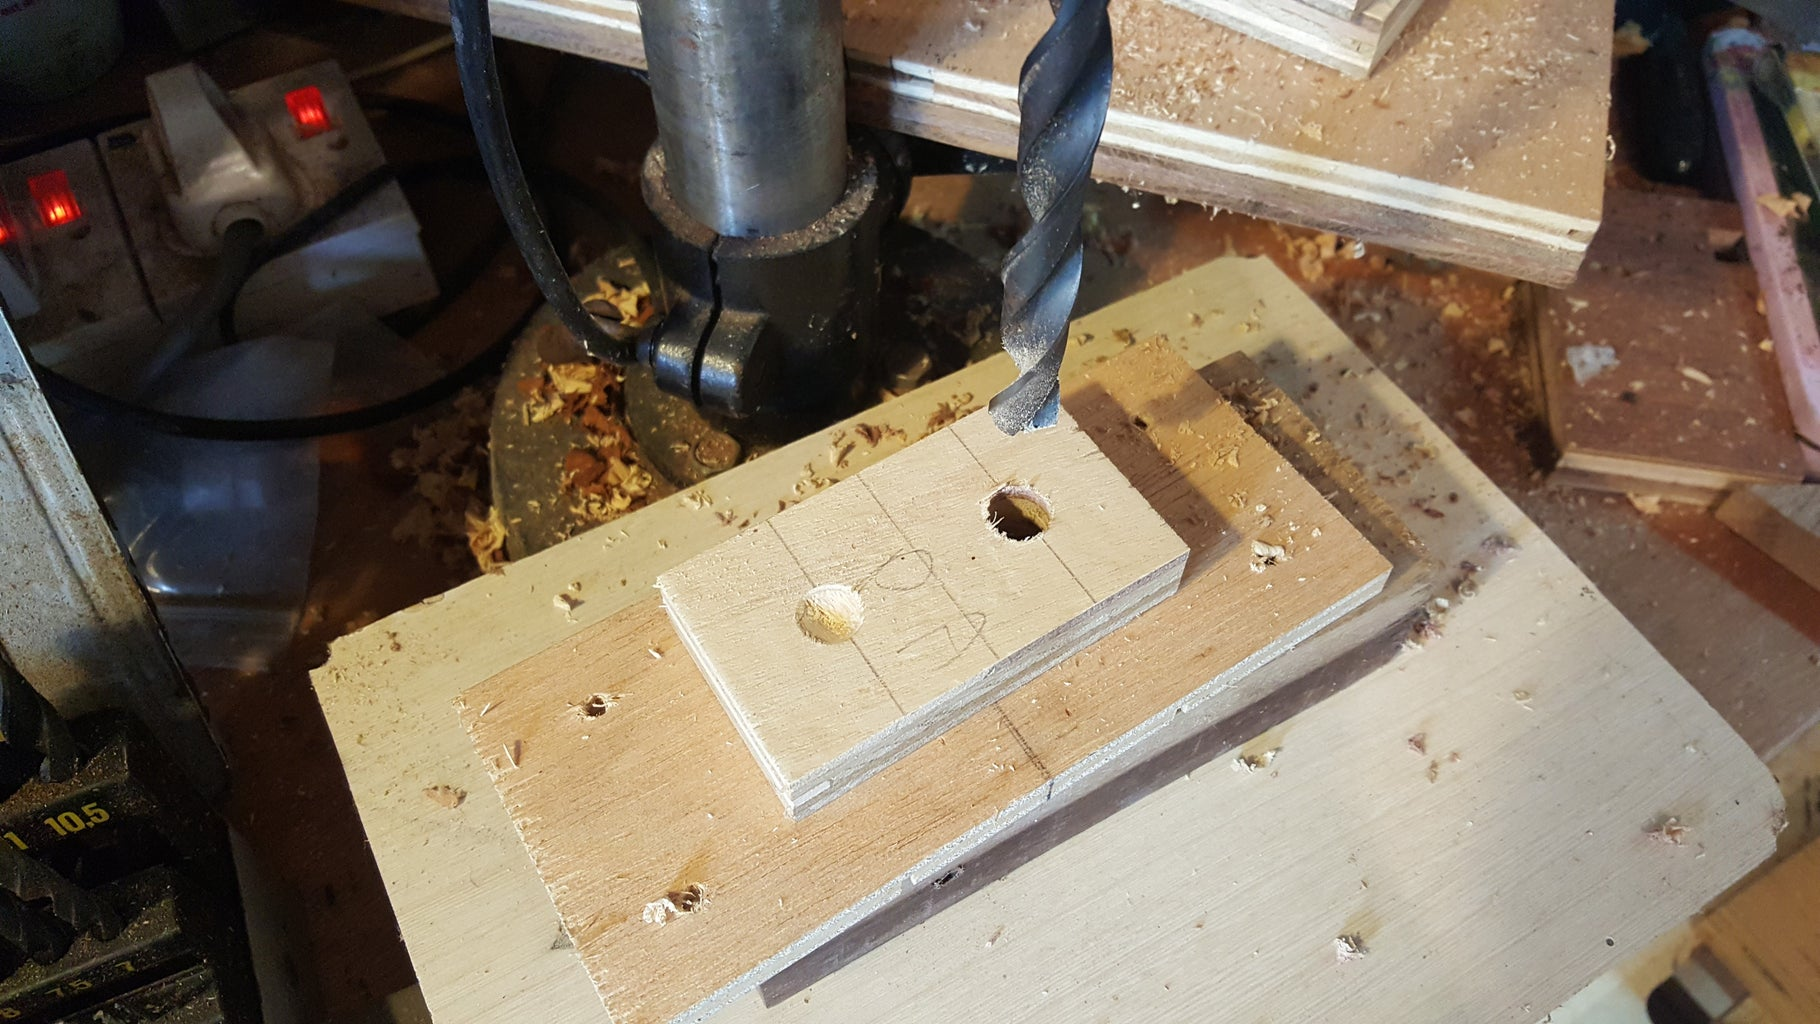 Cut the Blanks and Drill Holes